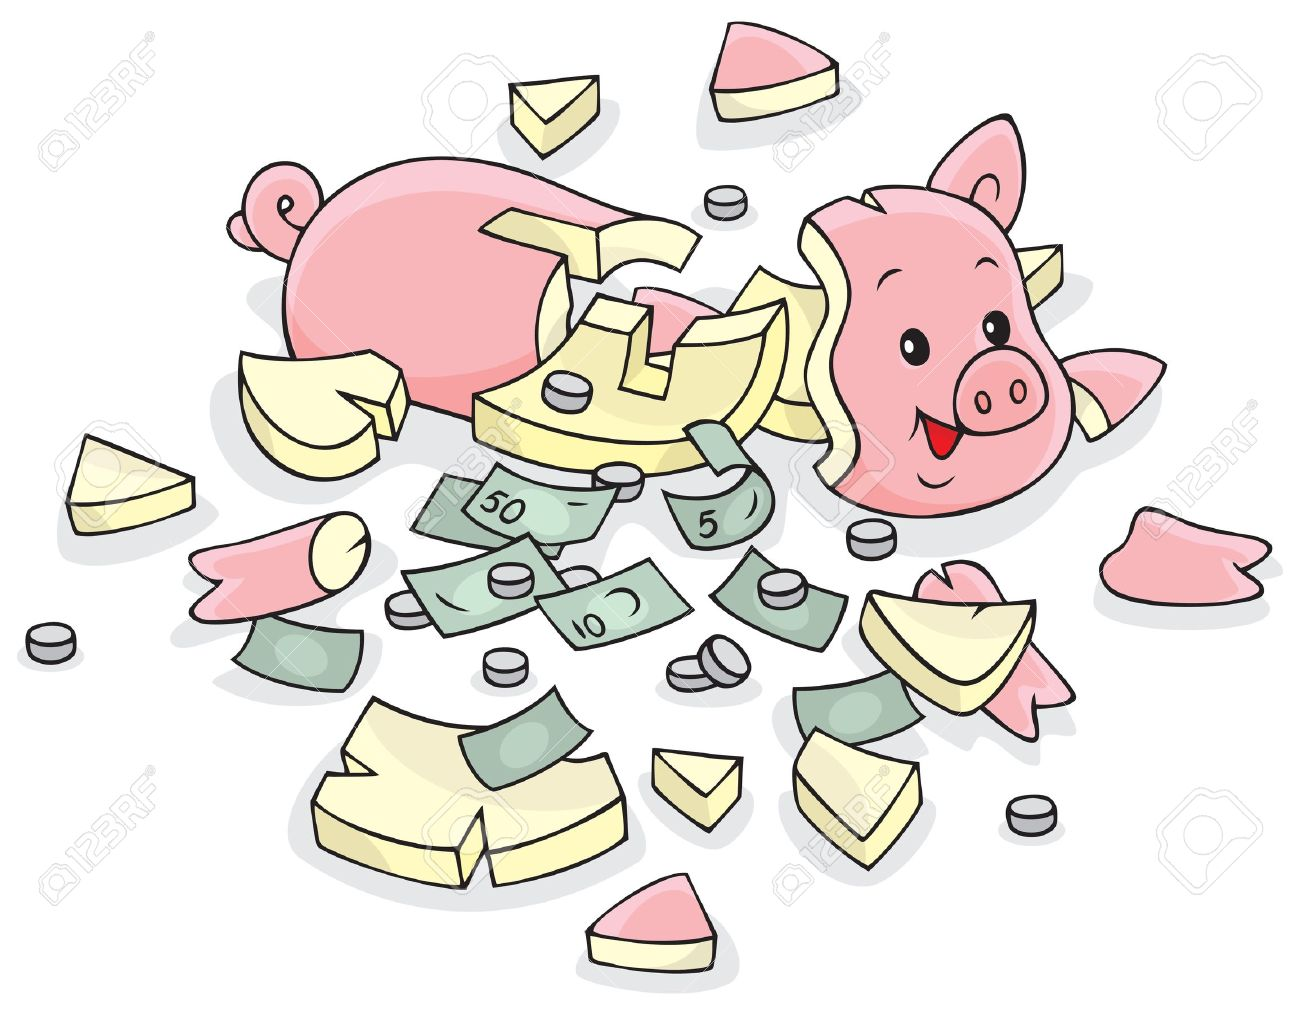 Broken piggy bank clipart - ClipartFest royalty free library